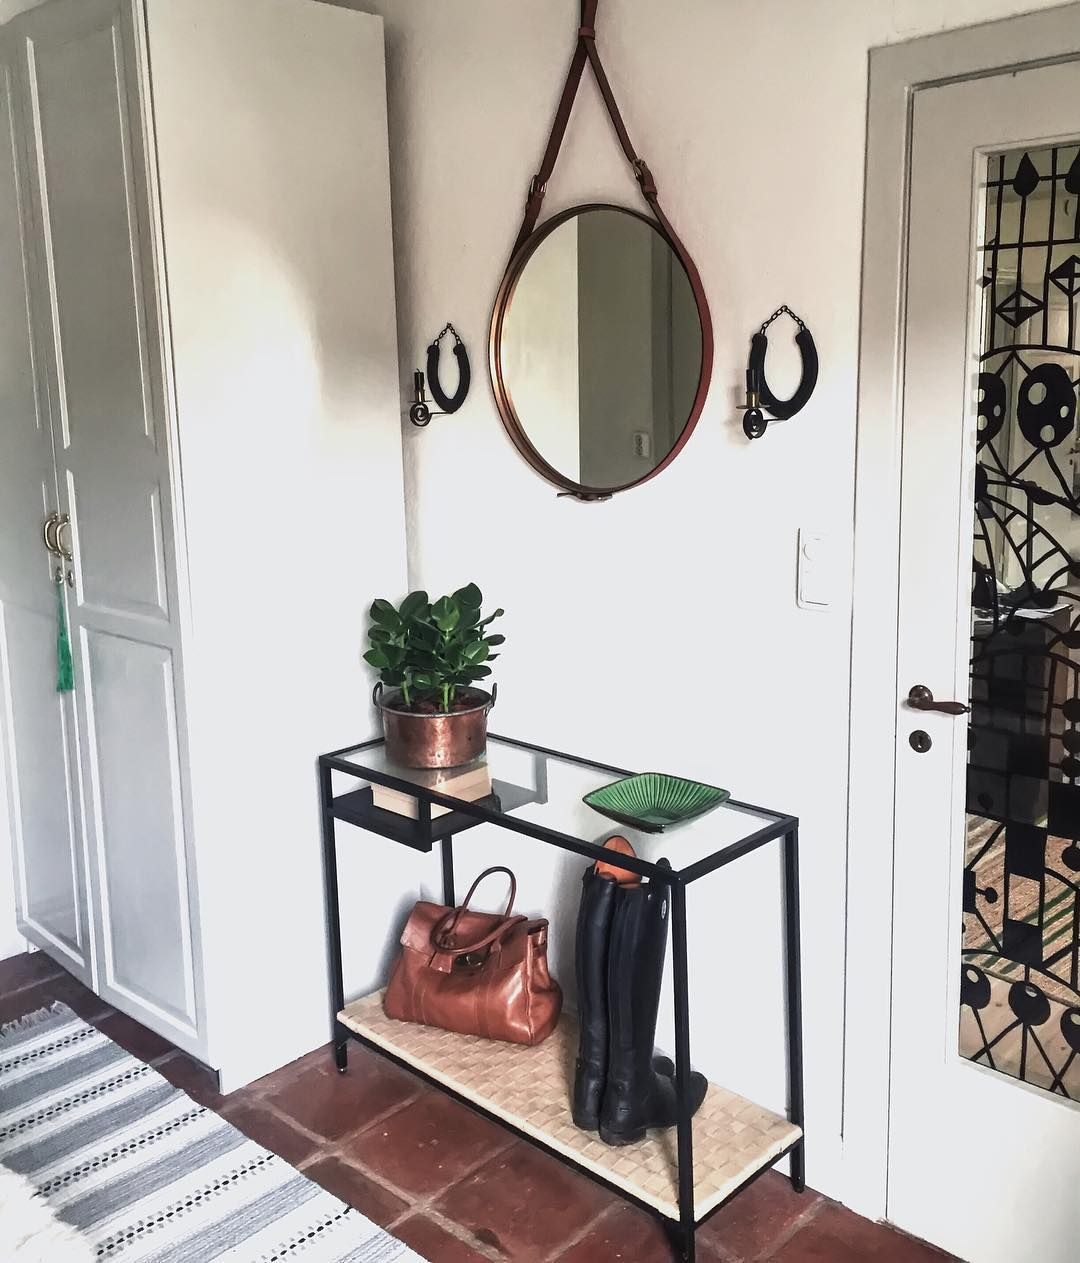 Ikea'Vittsjö' hack by @pickapillow Spaces Pinterest Entryway, Instagram and Ps